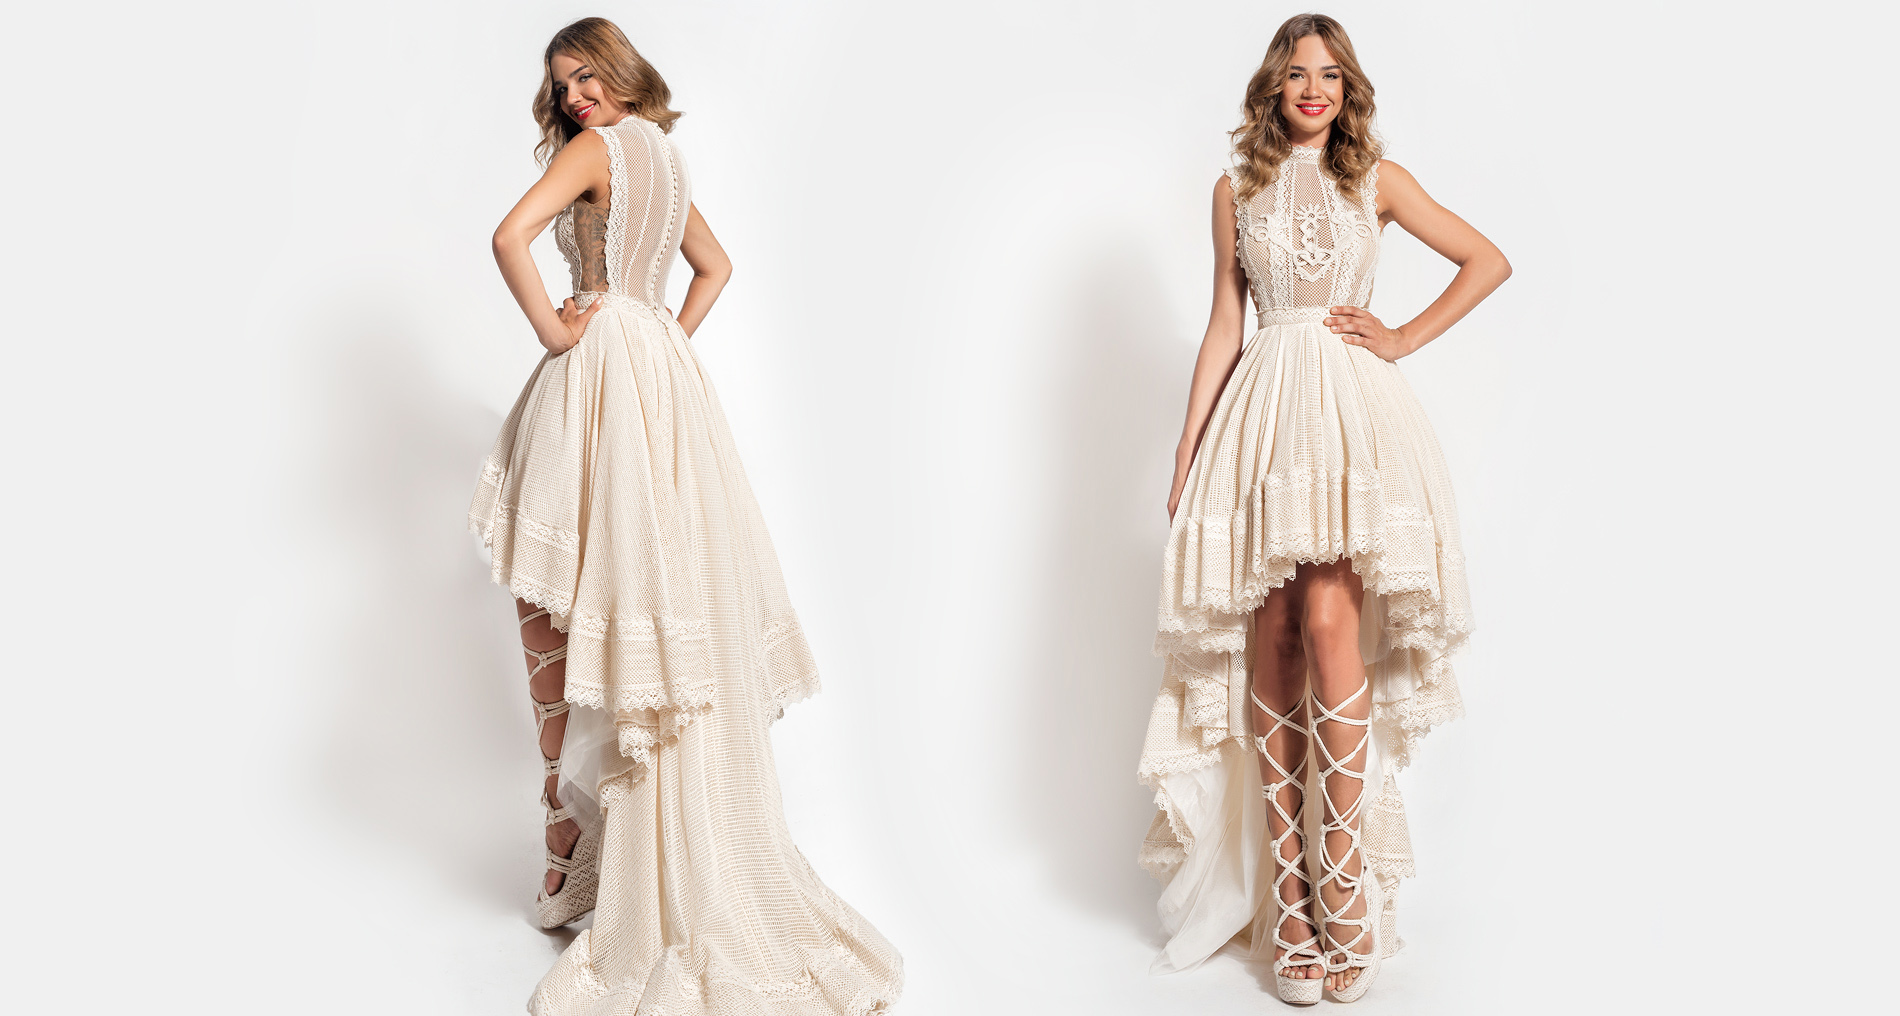 Demeter wedding dress from  Hellenic Vintage Essence Collection